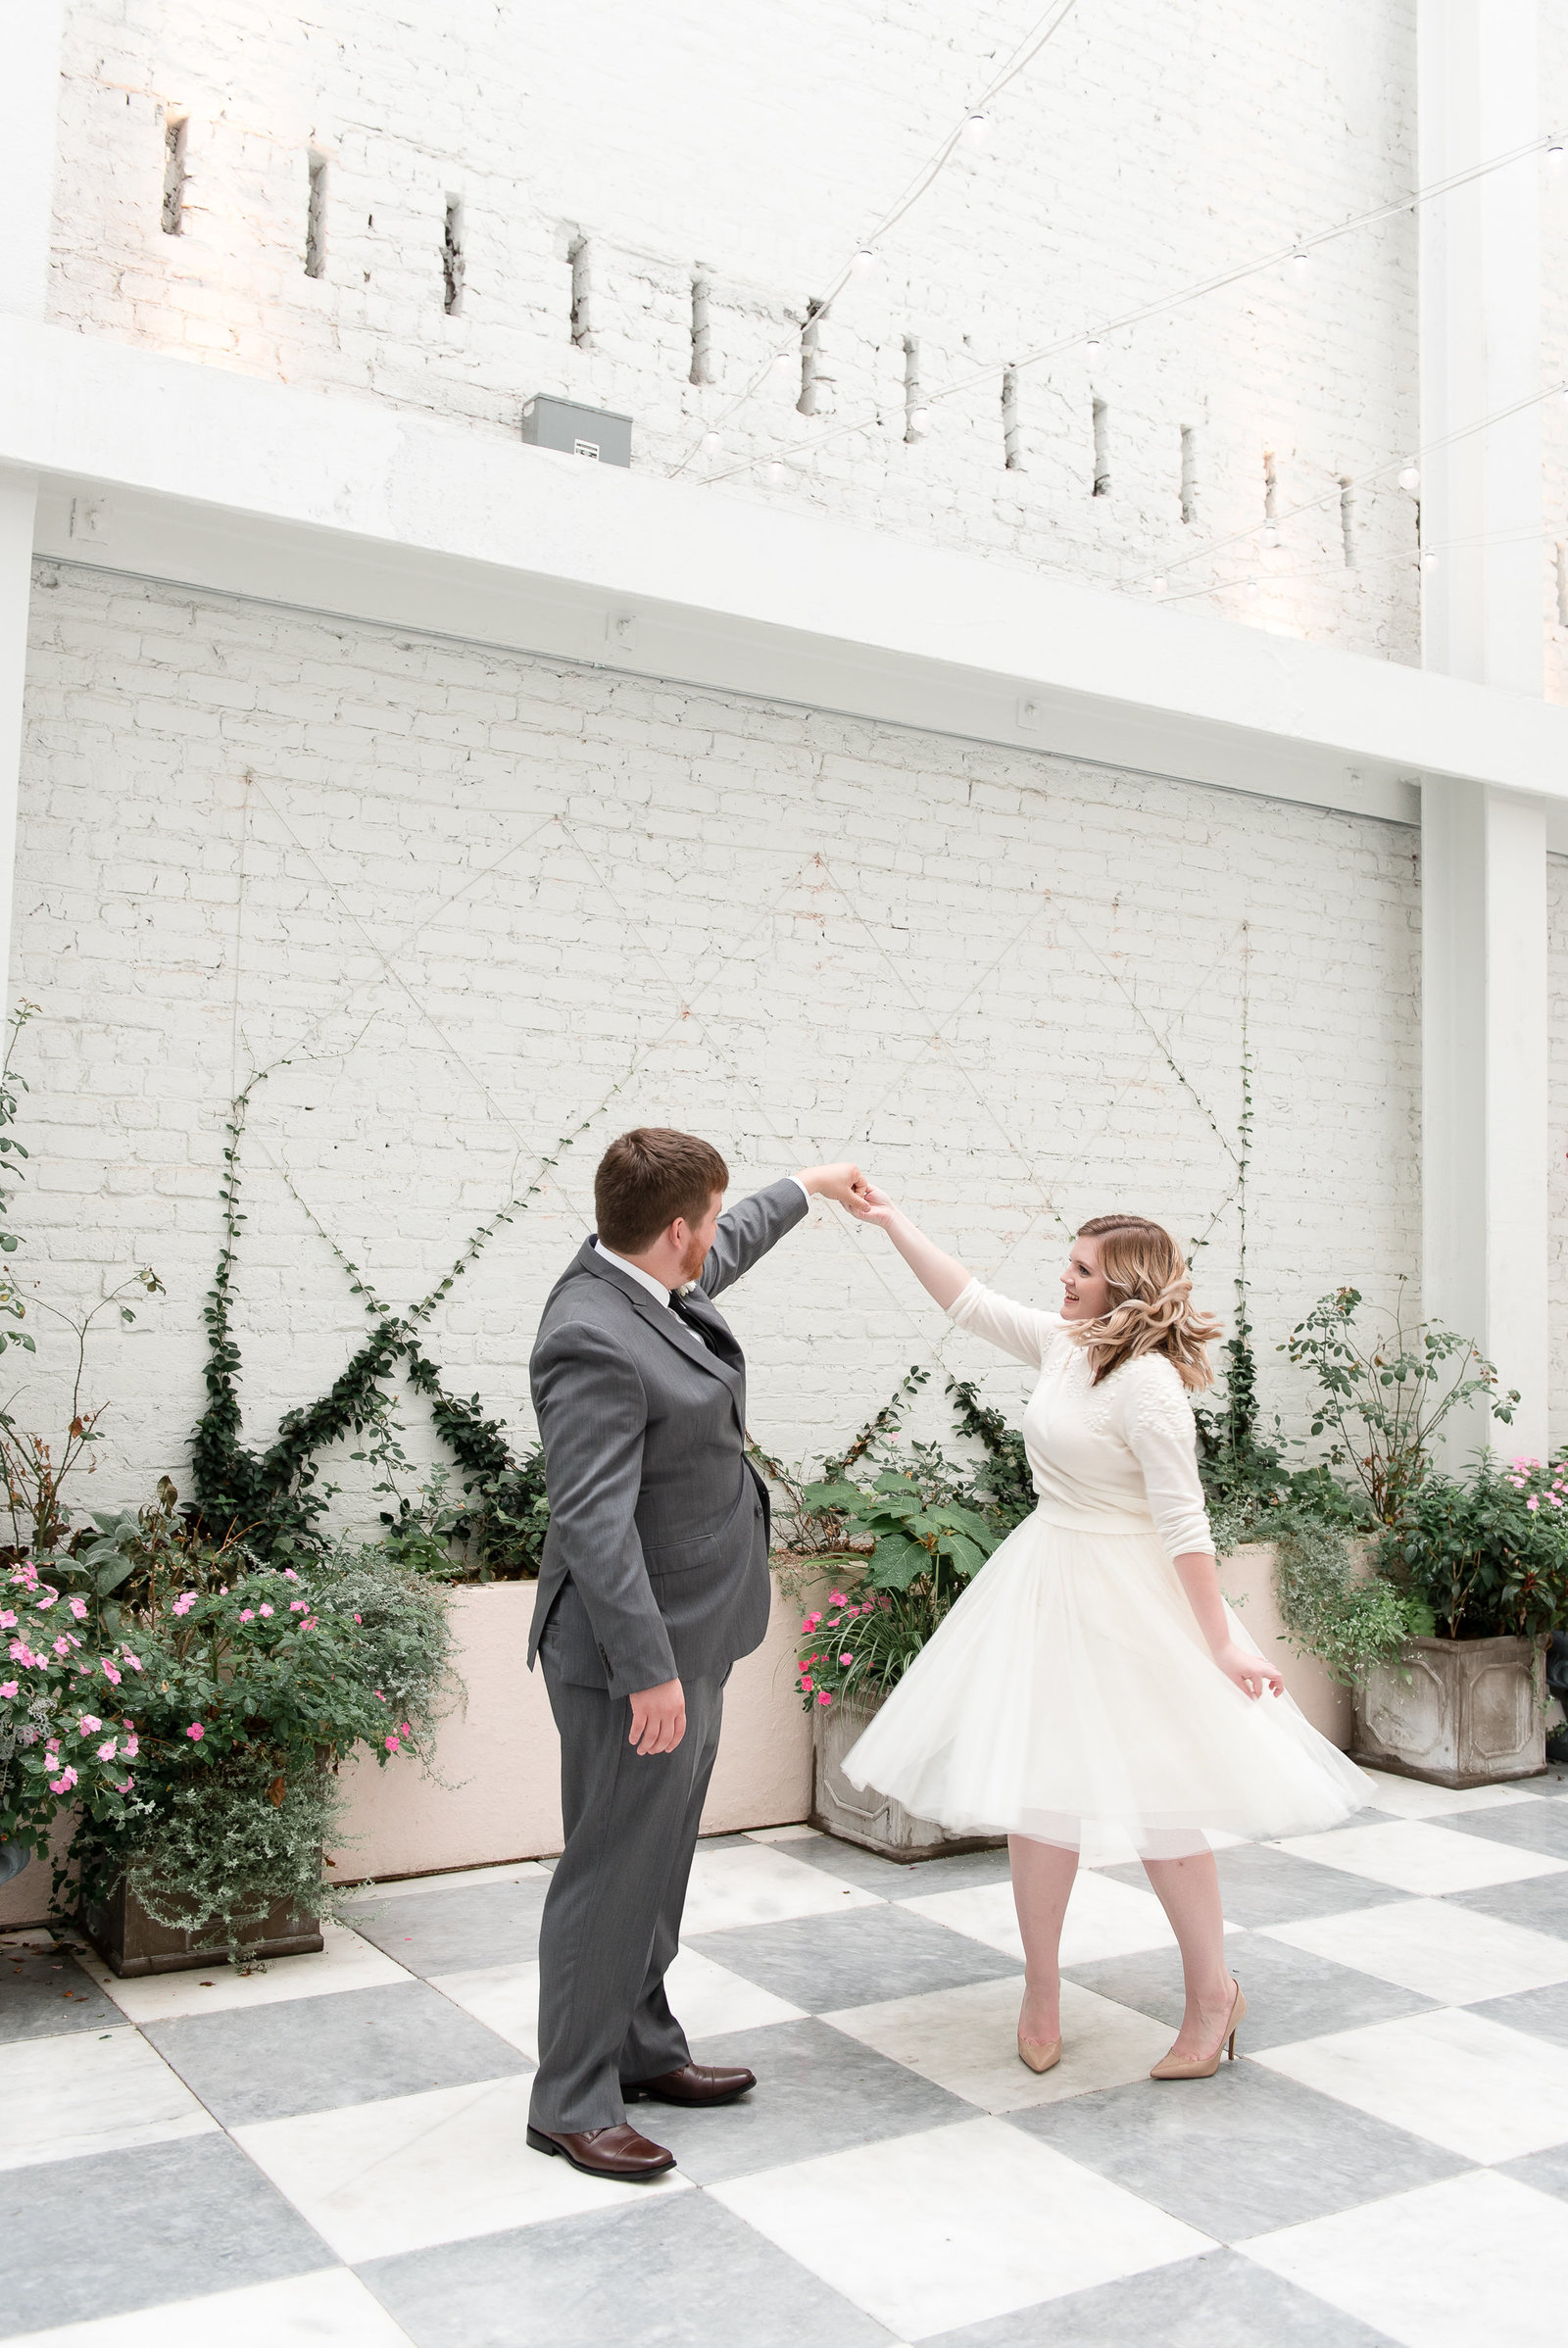 Taylor-and-Philip-Quirk-Wedding-Melissa-Desjardins-Photography-11